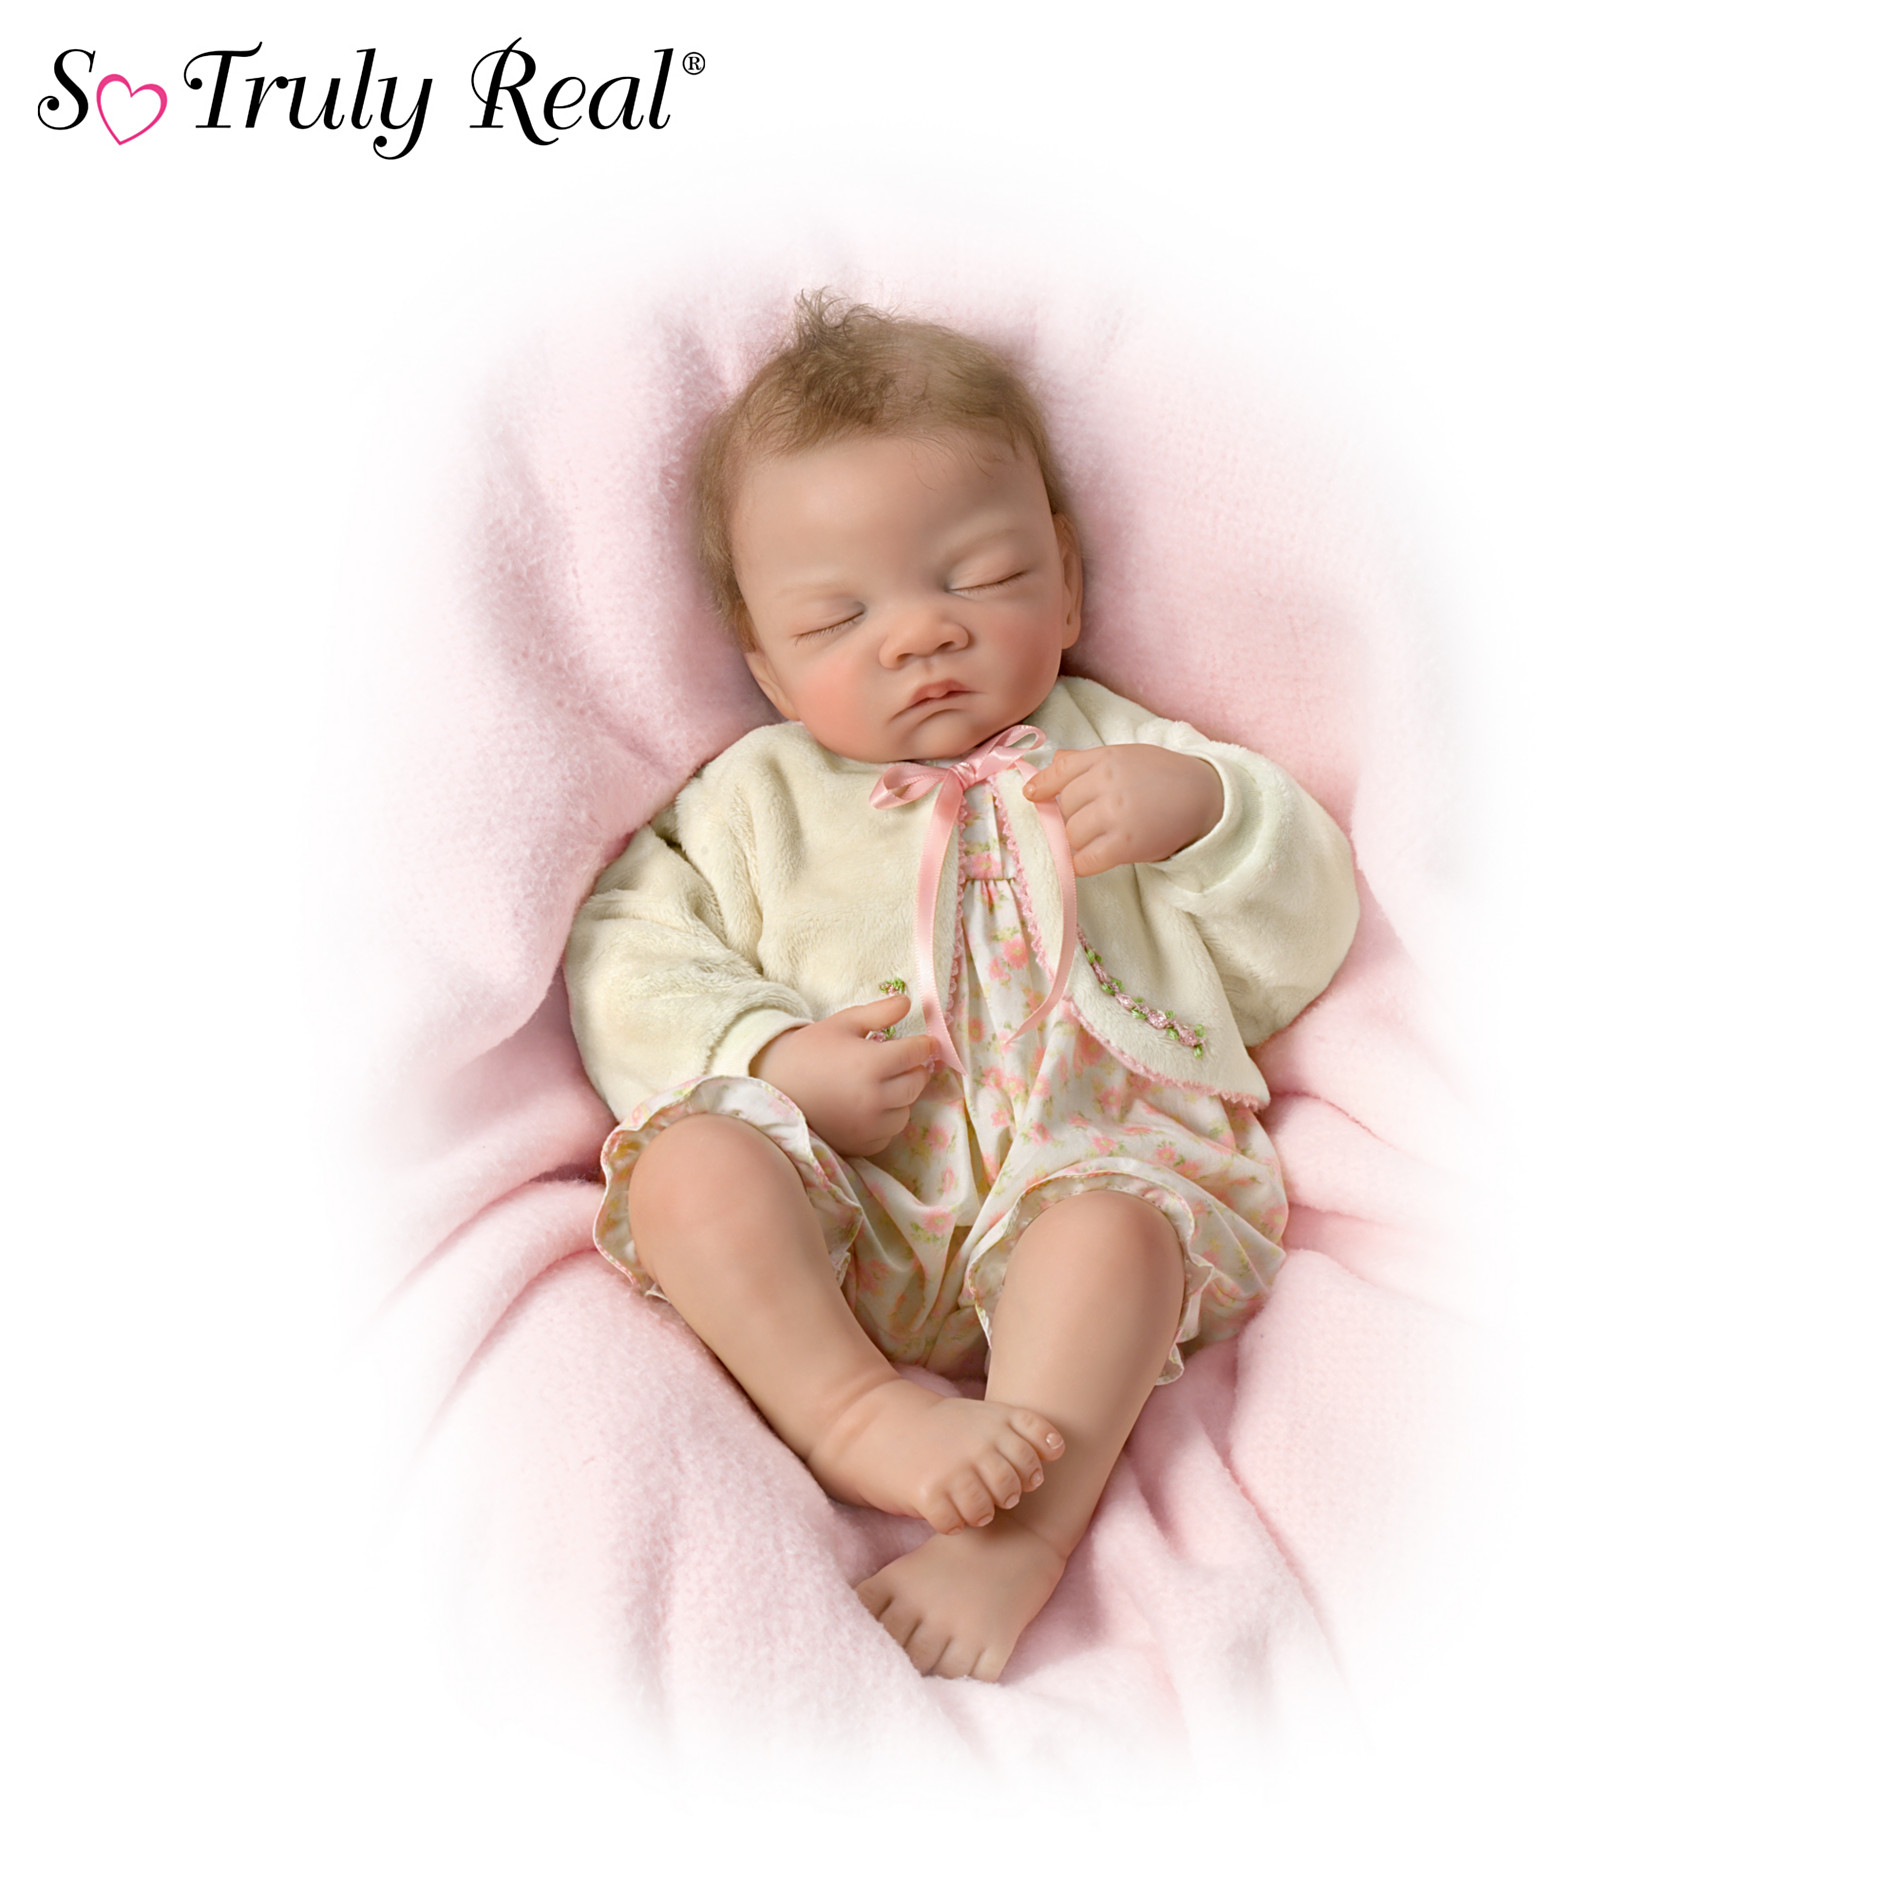 The Ashton-Drake Galleries So Truly Real Lifelike Baby Doll: Rock-A-Bye, Avery at Sears.com